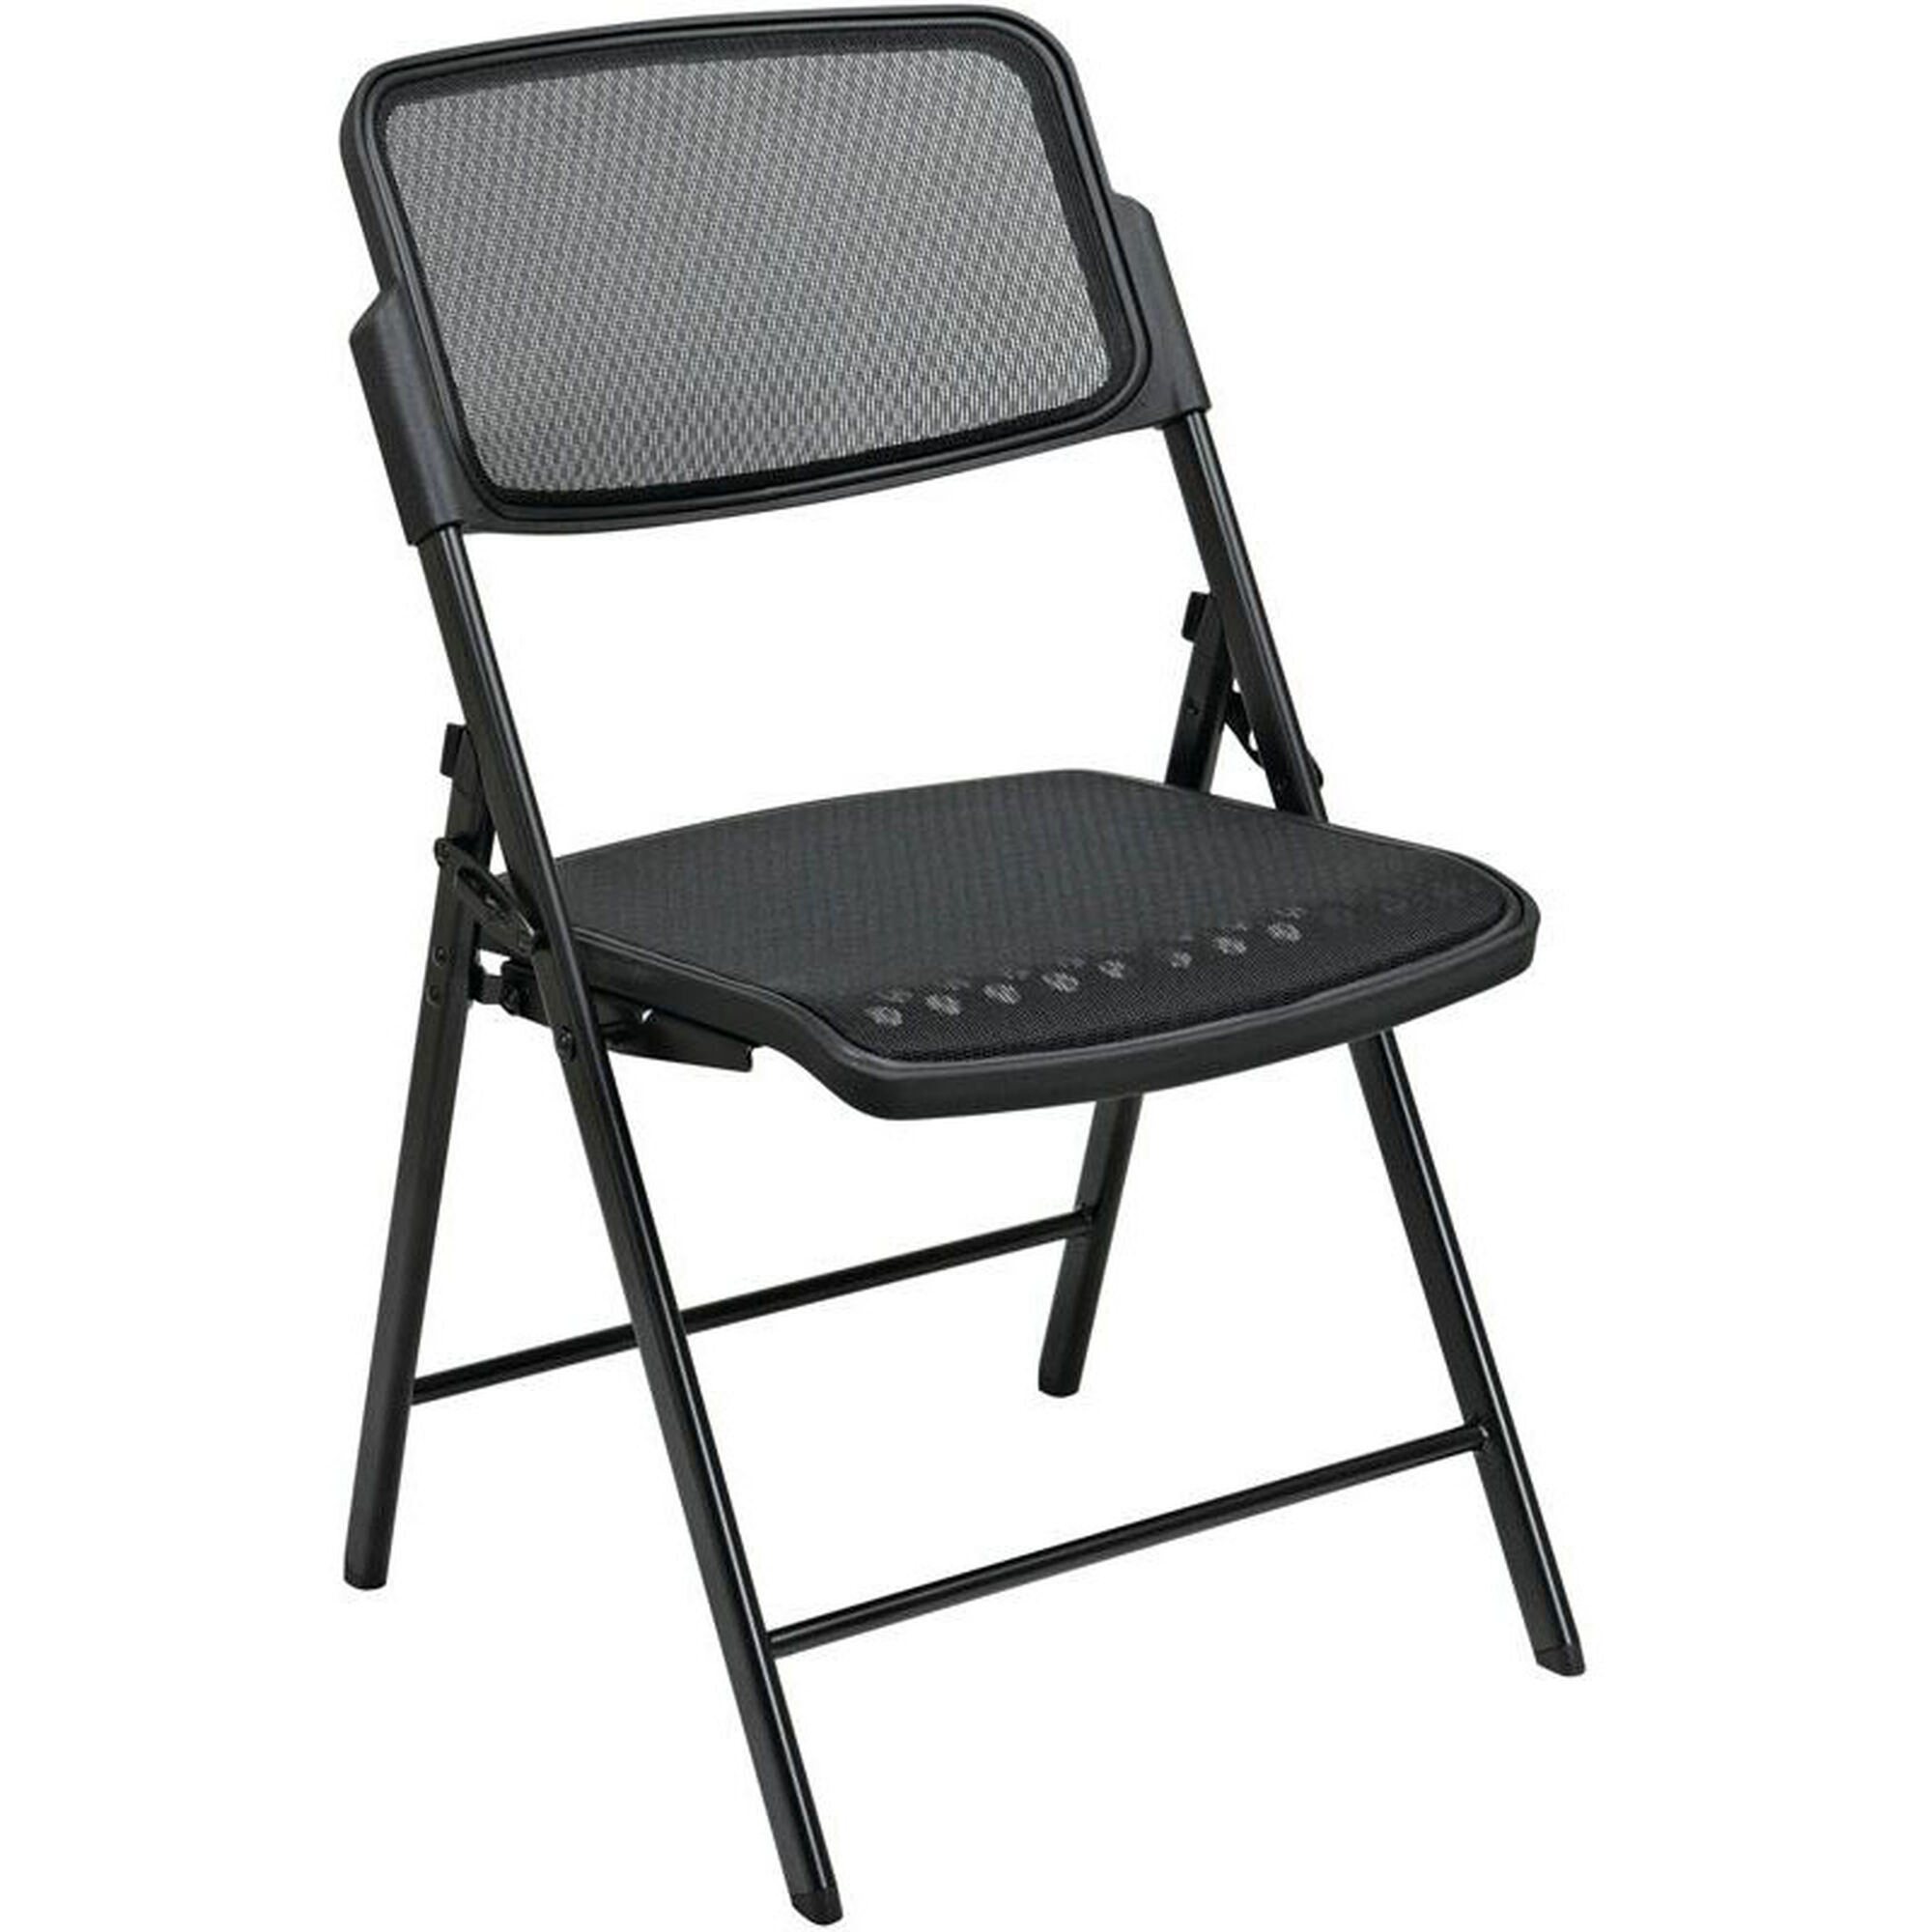 Terrific Pro Line Ii Deluxe Progrid Mesh Seat And Back Folding Chair With 400 Lb Weight Capacity Set Of 2 Black Ocoug Best Dining Table And Chair Ideas Images Ocougorg